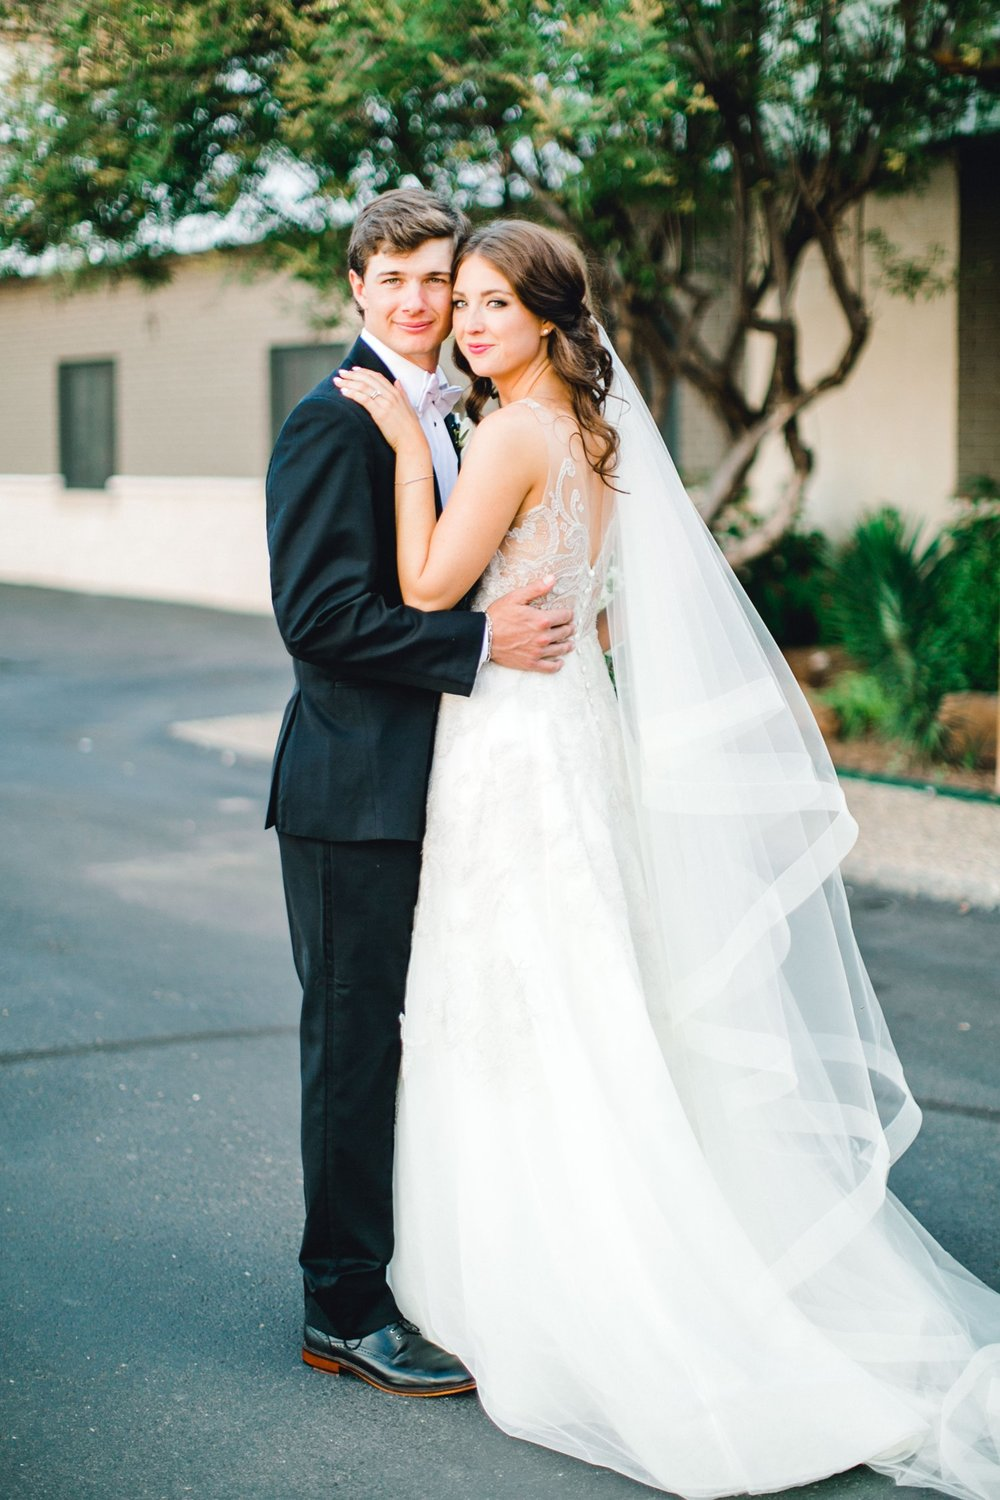 Hunter_and_Molly_Rawls_ALLEEJ_Lubbock_WEDDING_Legacy_Event_Center_0140.jpg